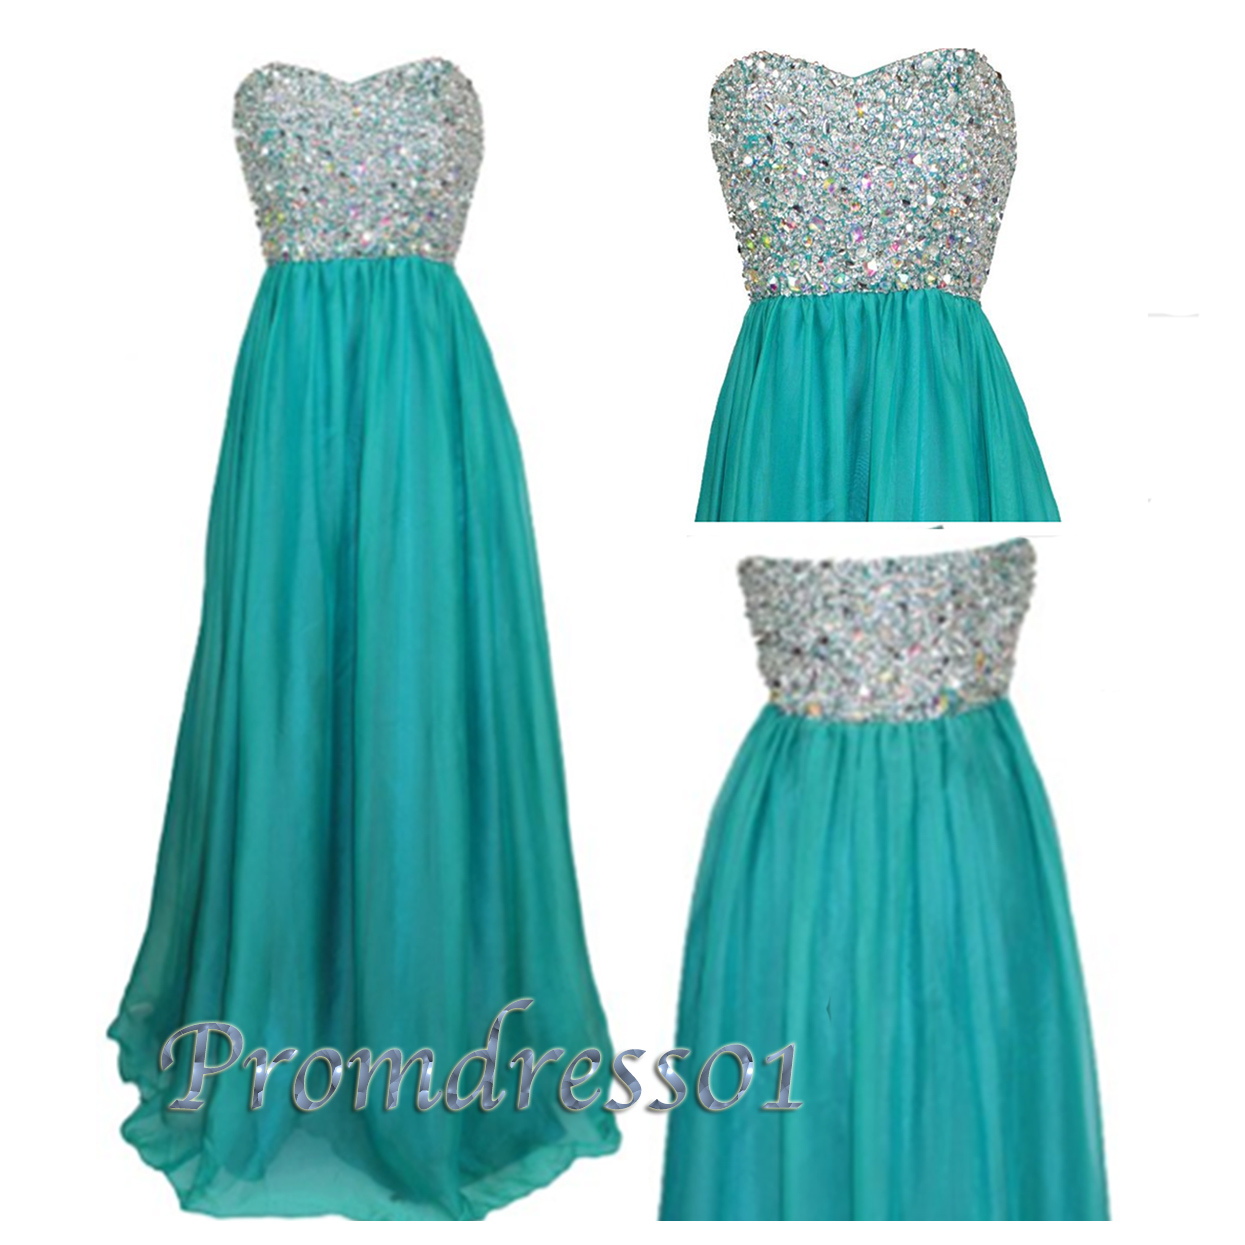 2015 spring green sequins a line slim prom dress prom dresses 2017